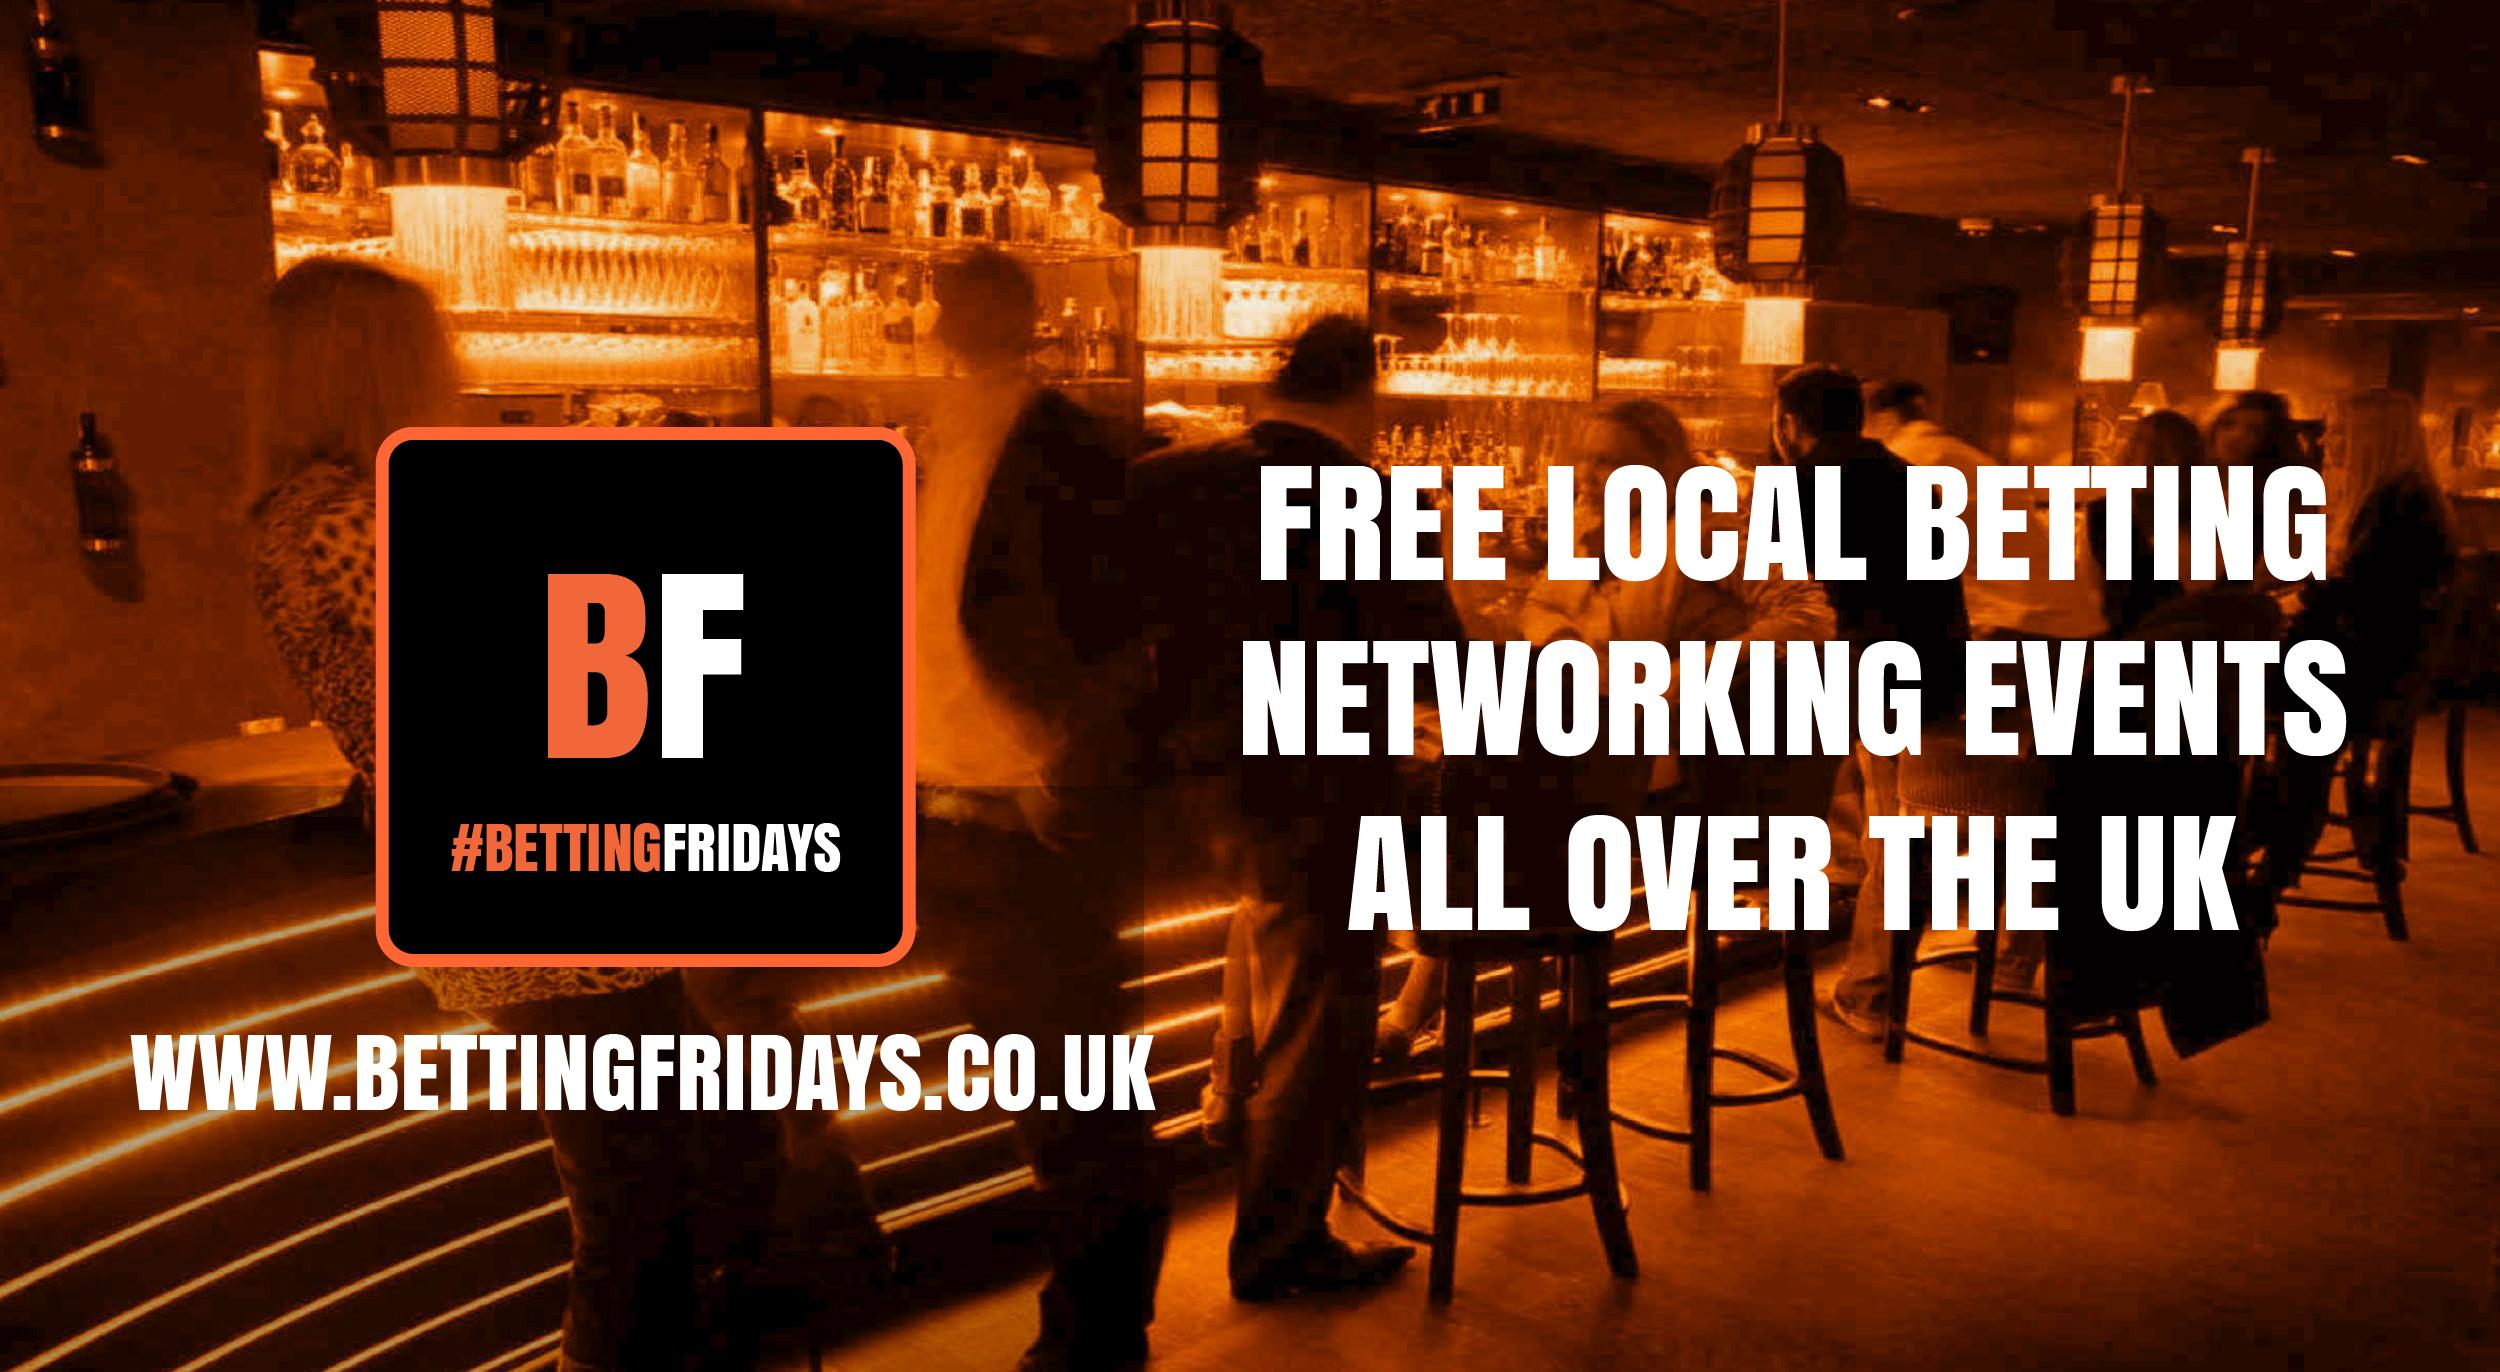 Betting Fridays! Free betting networking event in St Helens